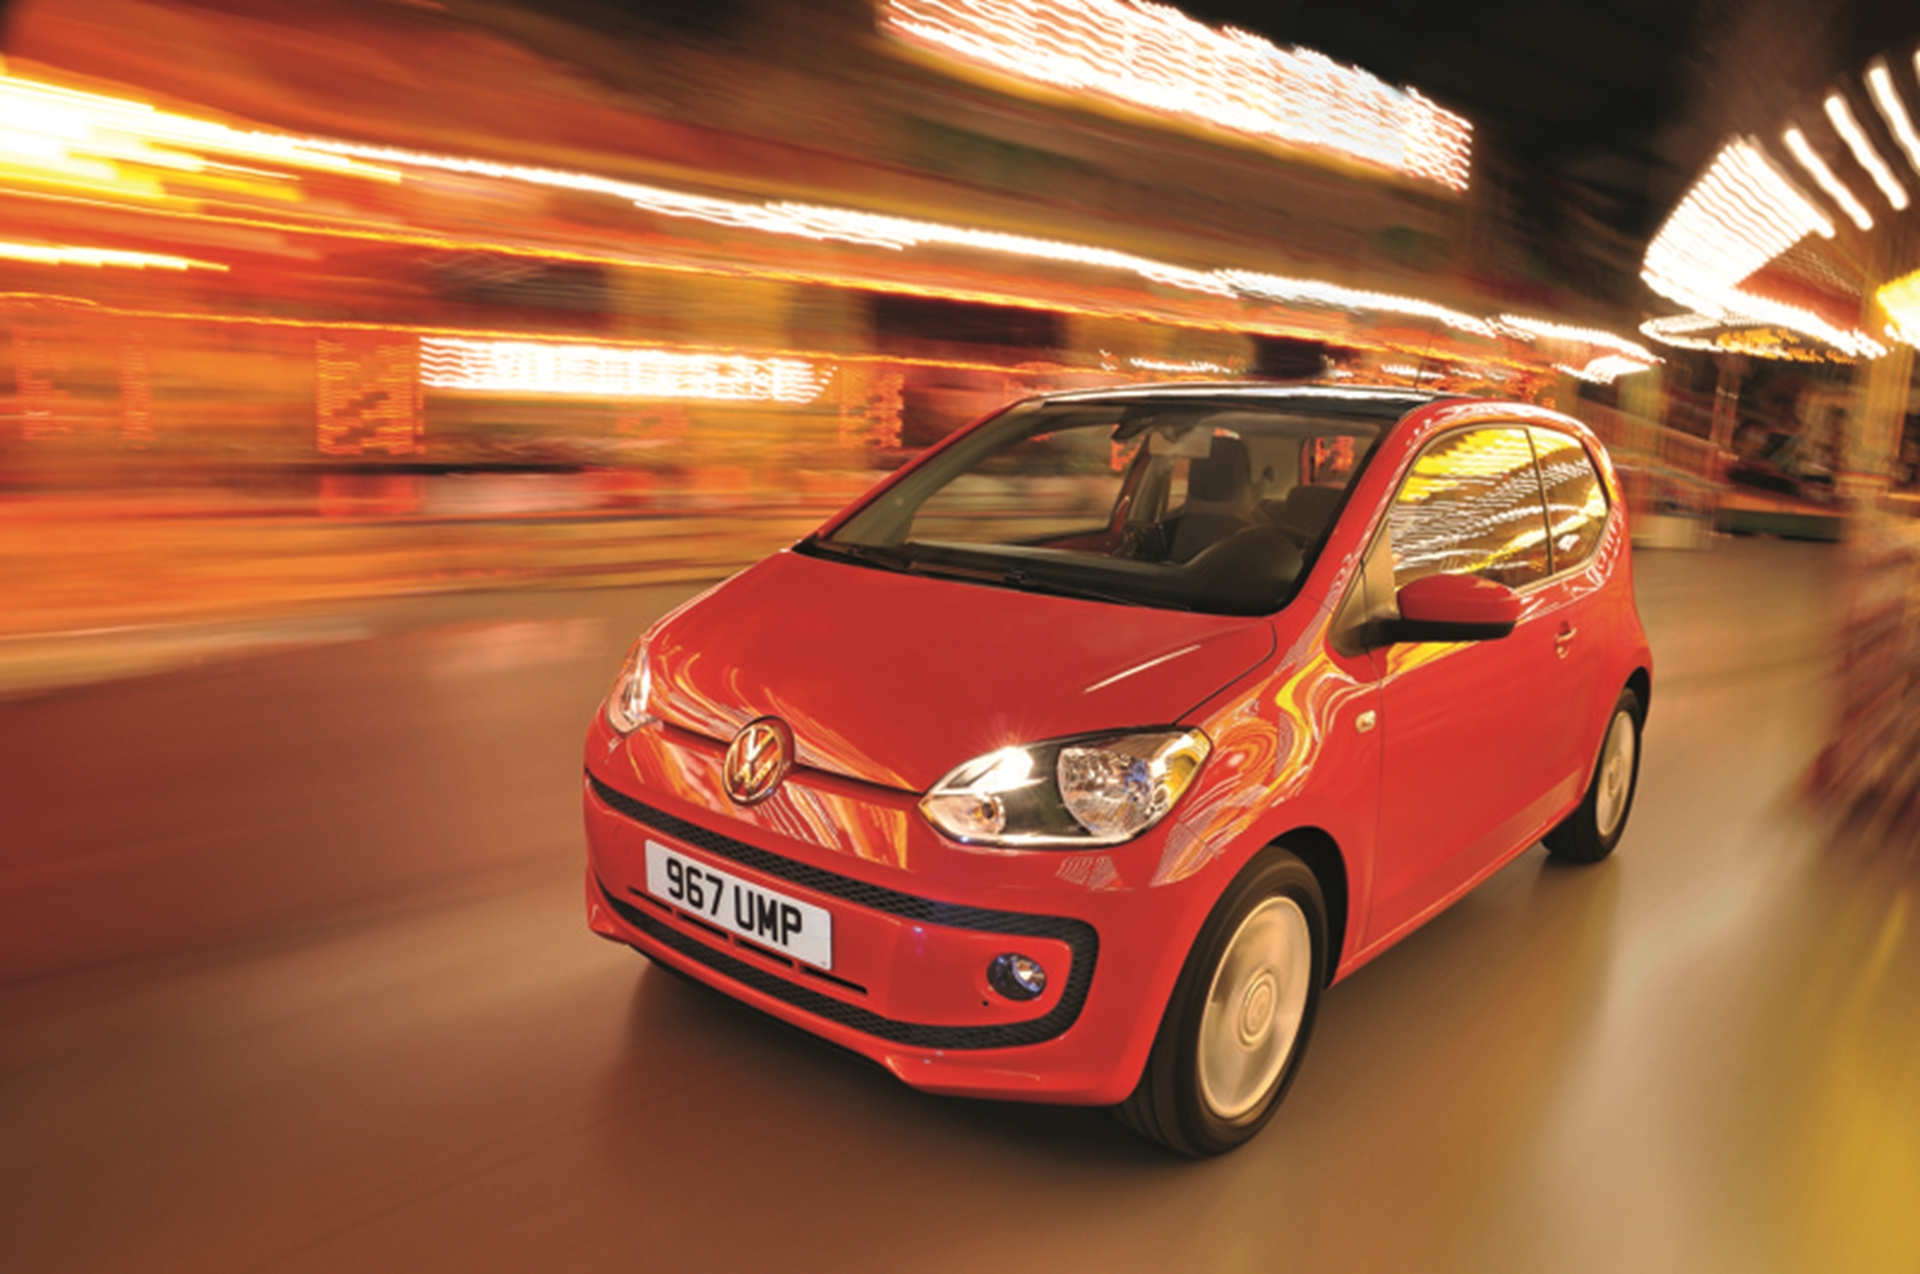 Volkswagen Up triumphs at 2012 What Car? Awards